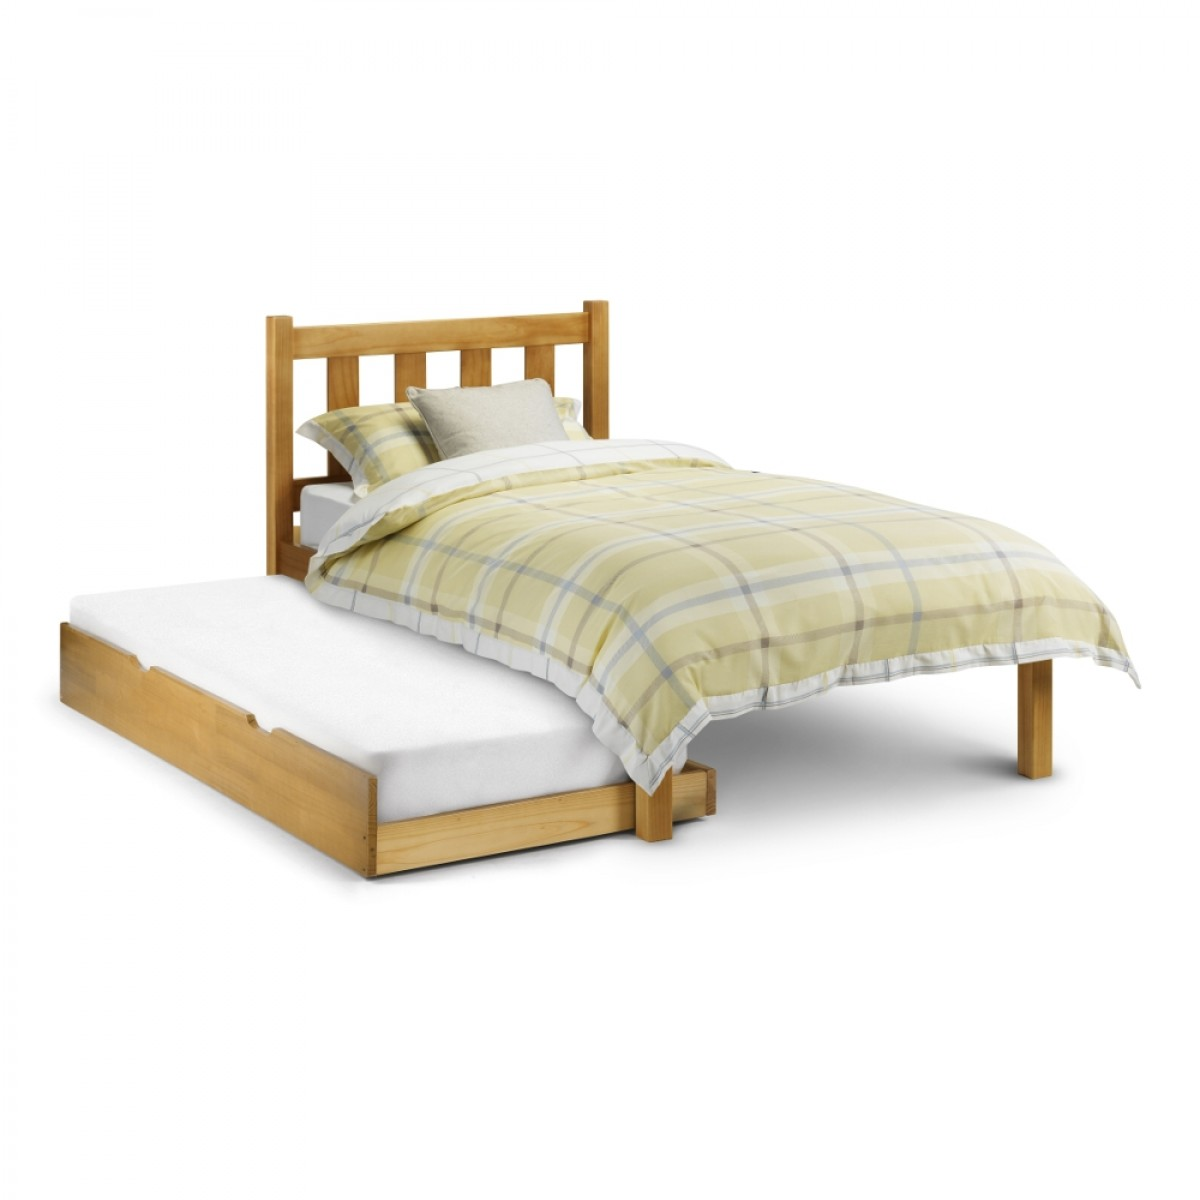 Poppy Antique Solid Pine Wooden Guest Bed and Trundle - 3ft Single